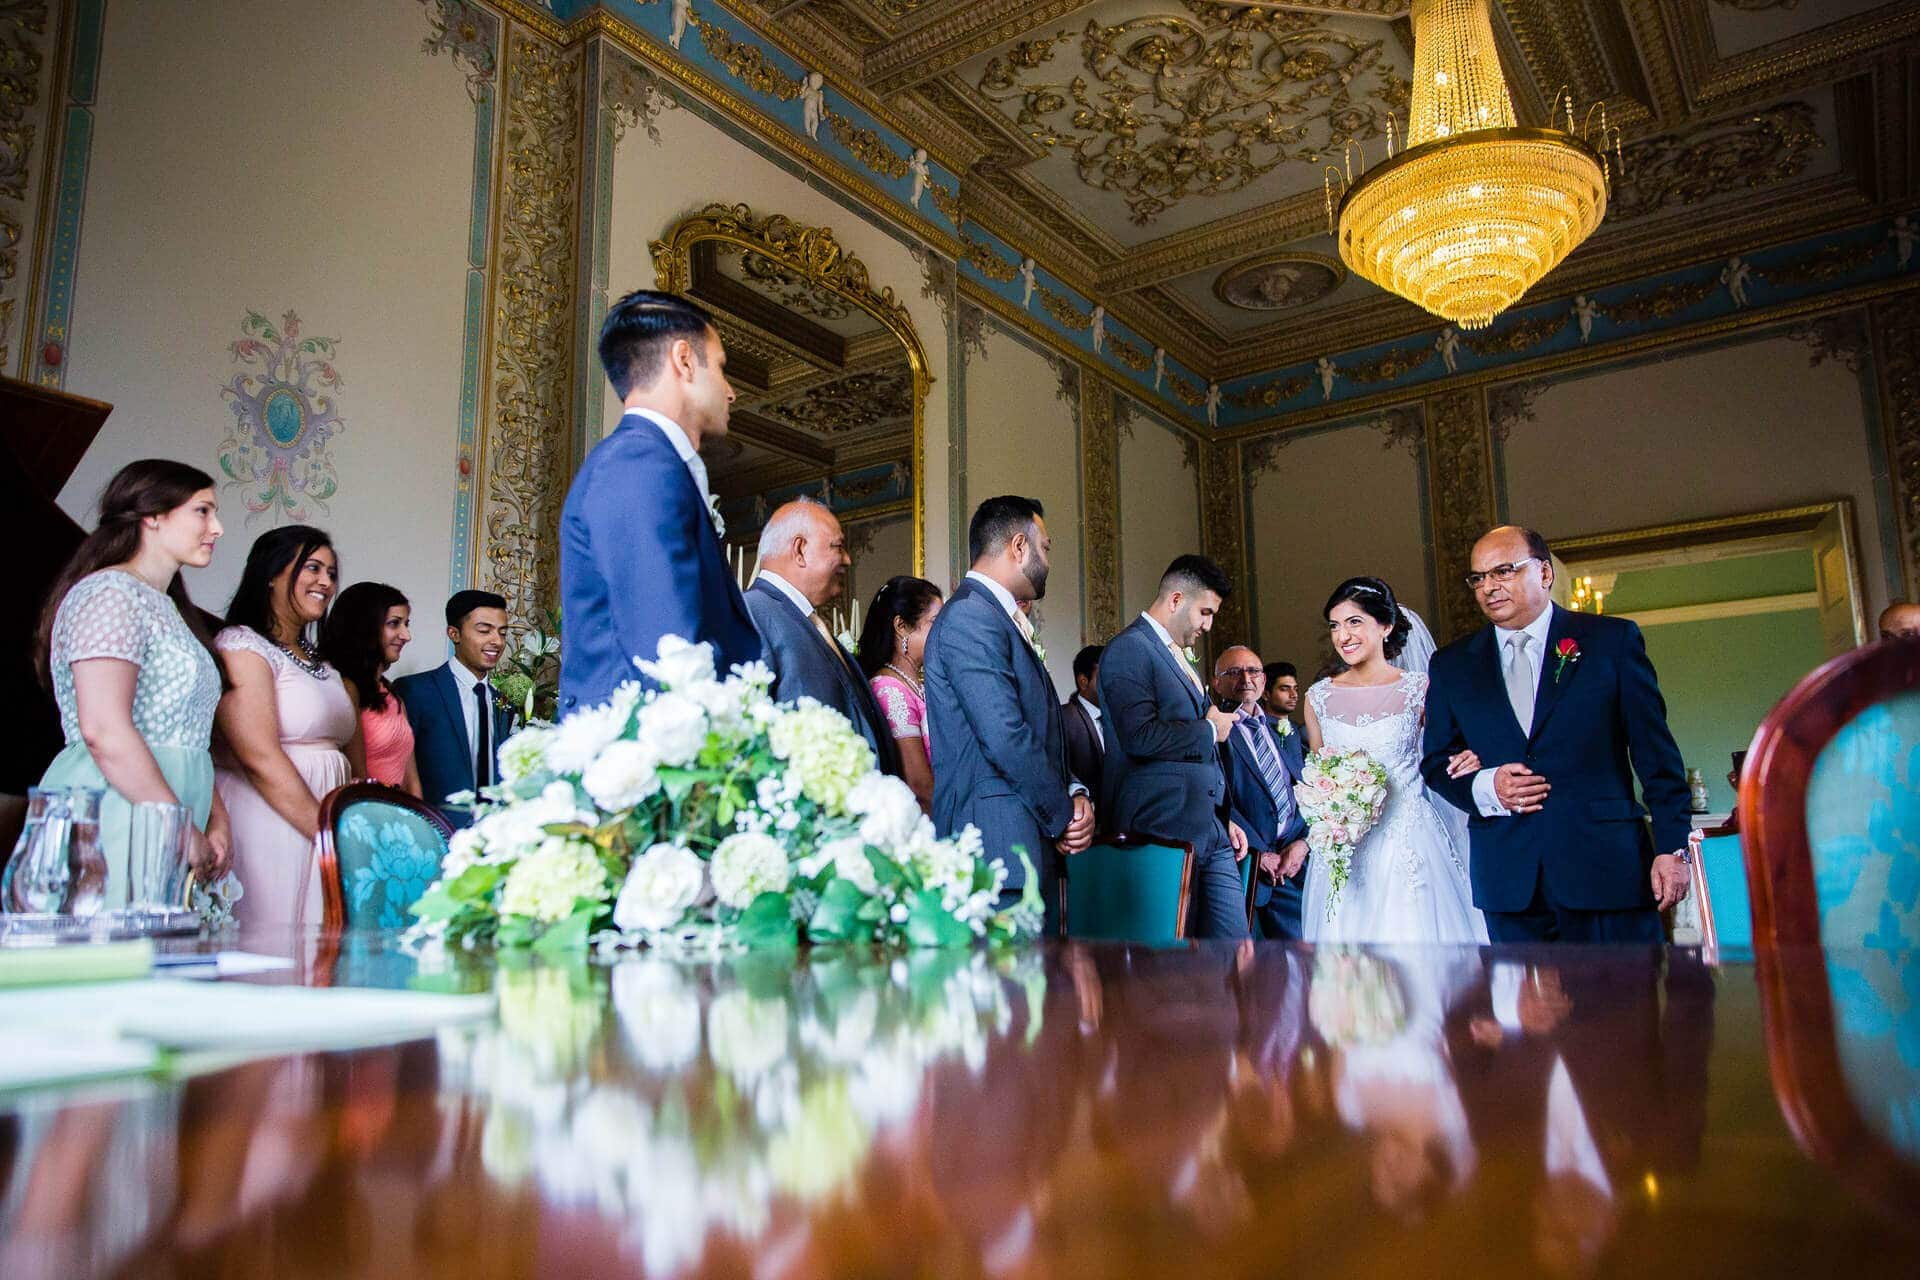 Hylands House Civil wedding ceremony